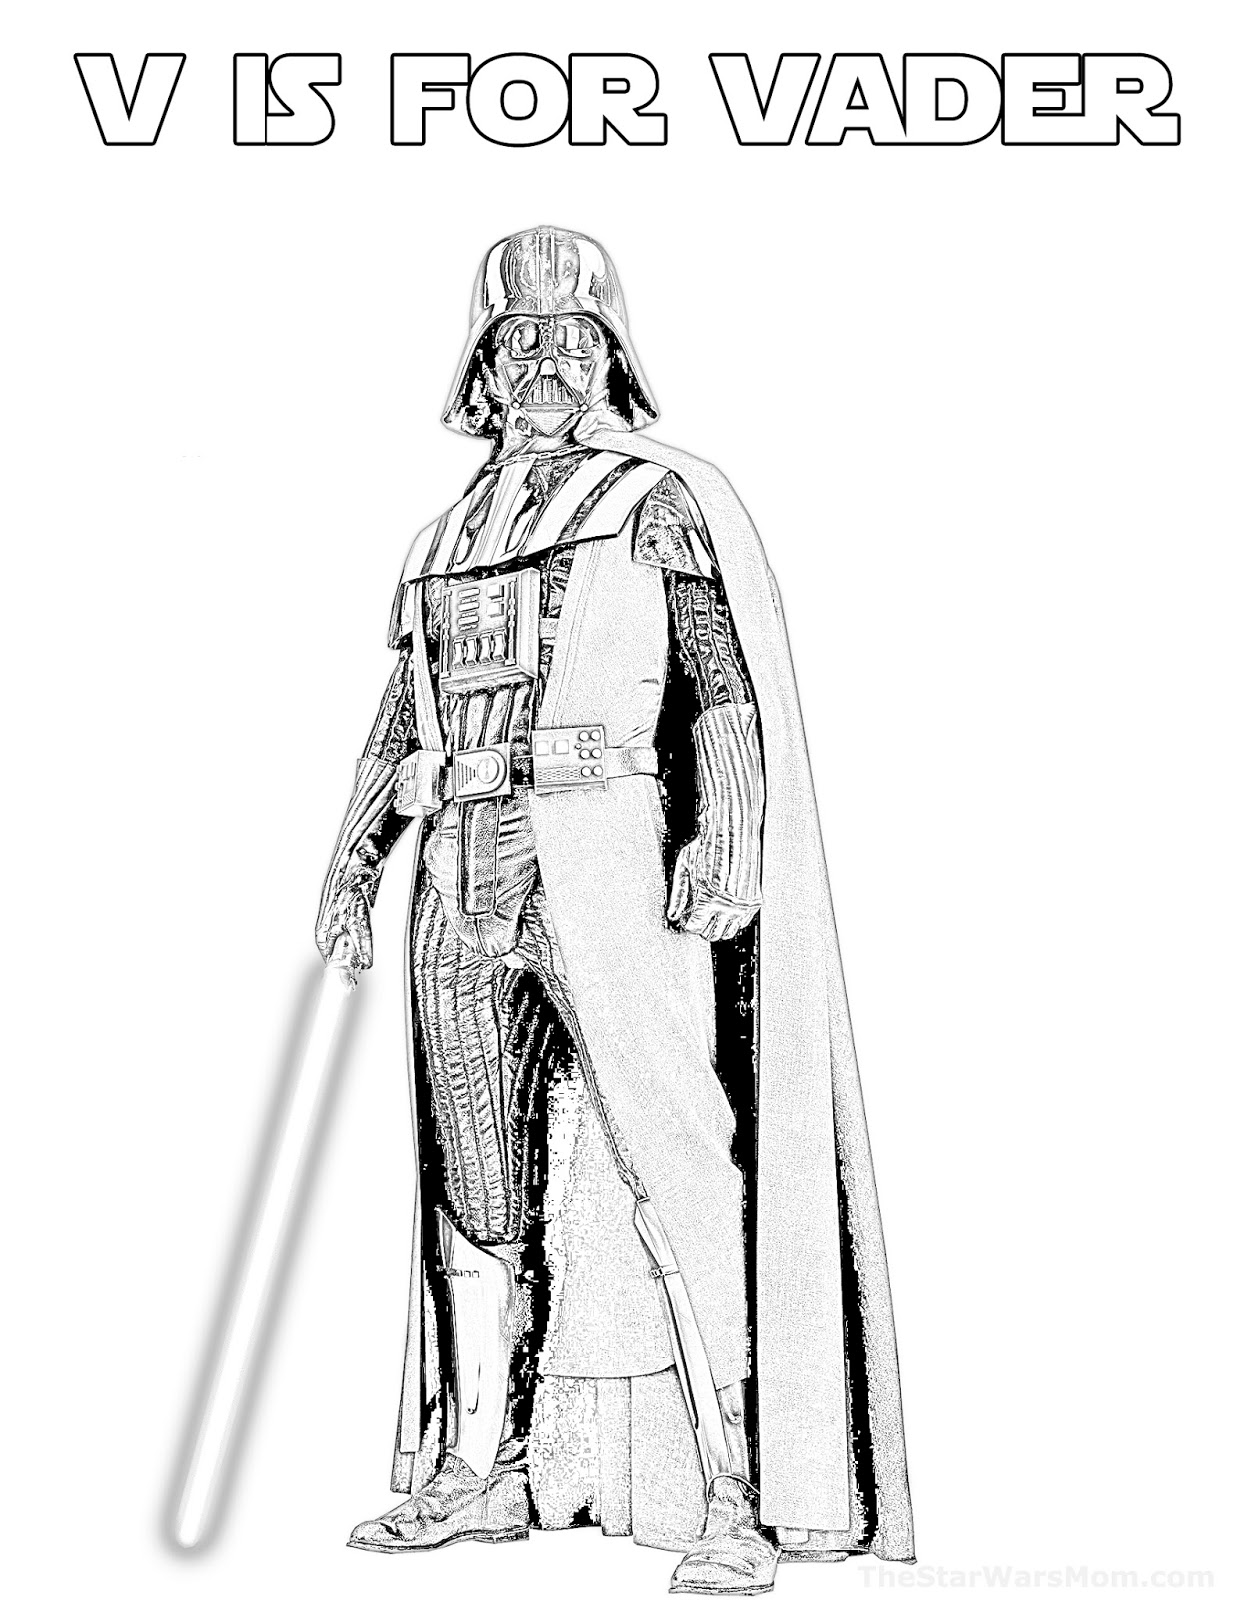 is for vader star wars alphabet coloring the mom parties recipes crafts and printables coloring pages Coloring Page Darth Vader